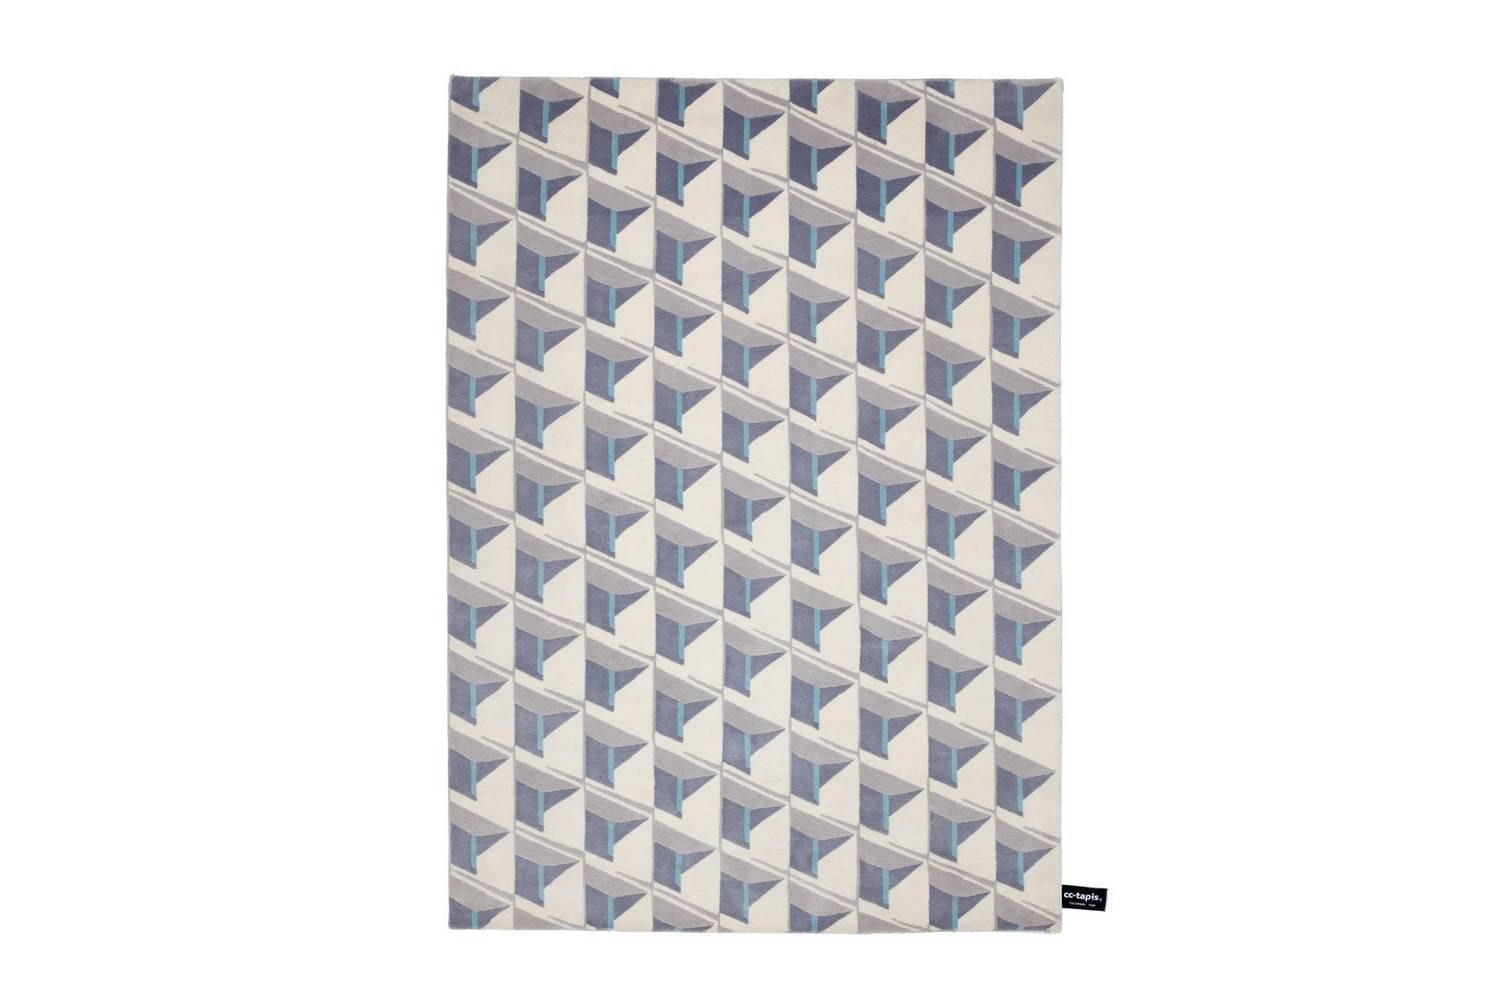 Caribe Hilton Rug by Eric Schroeder for CC-Tapis